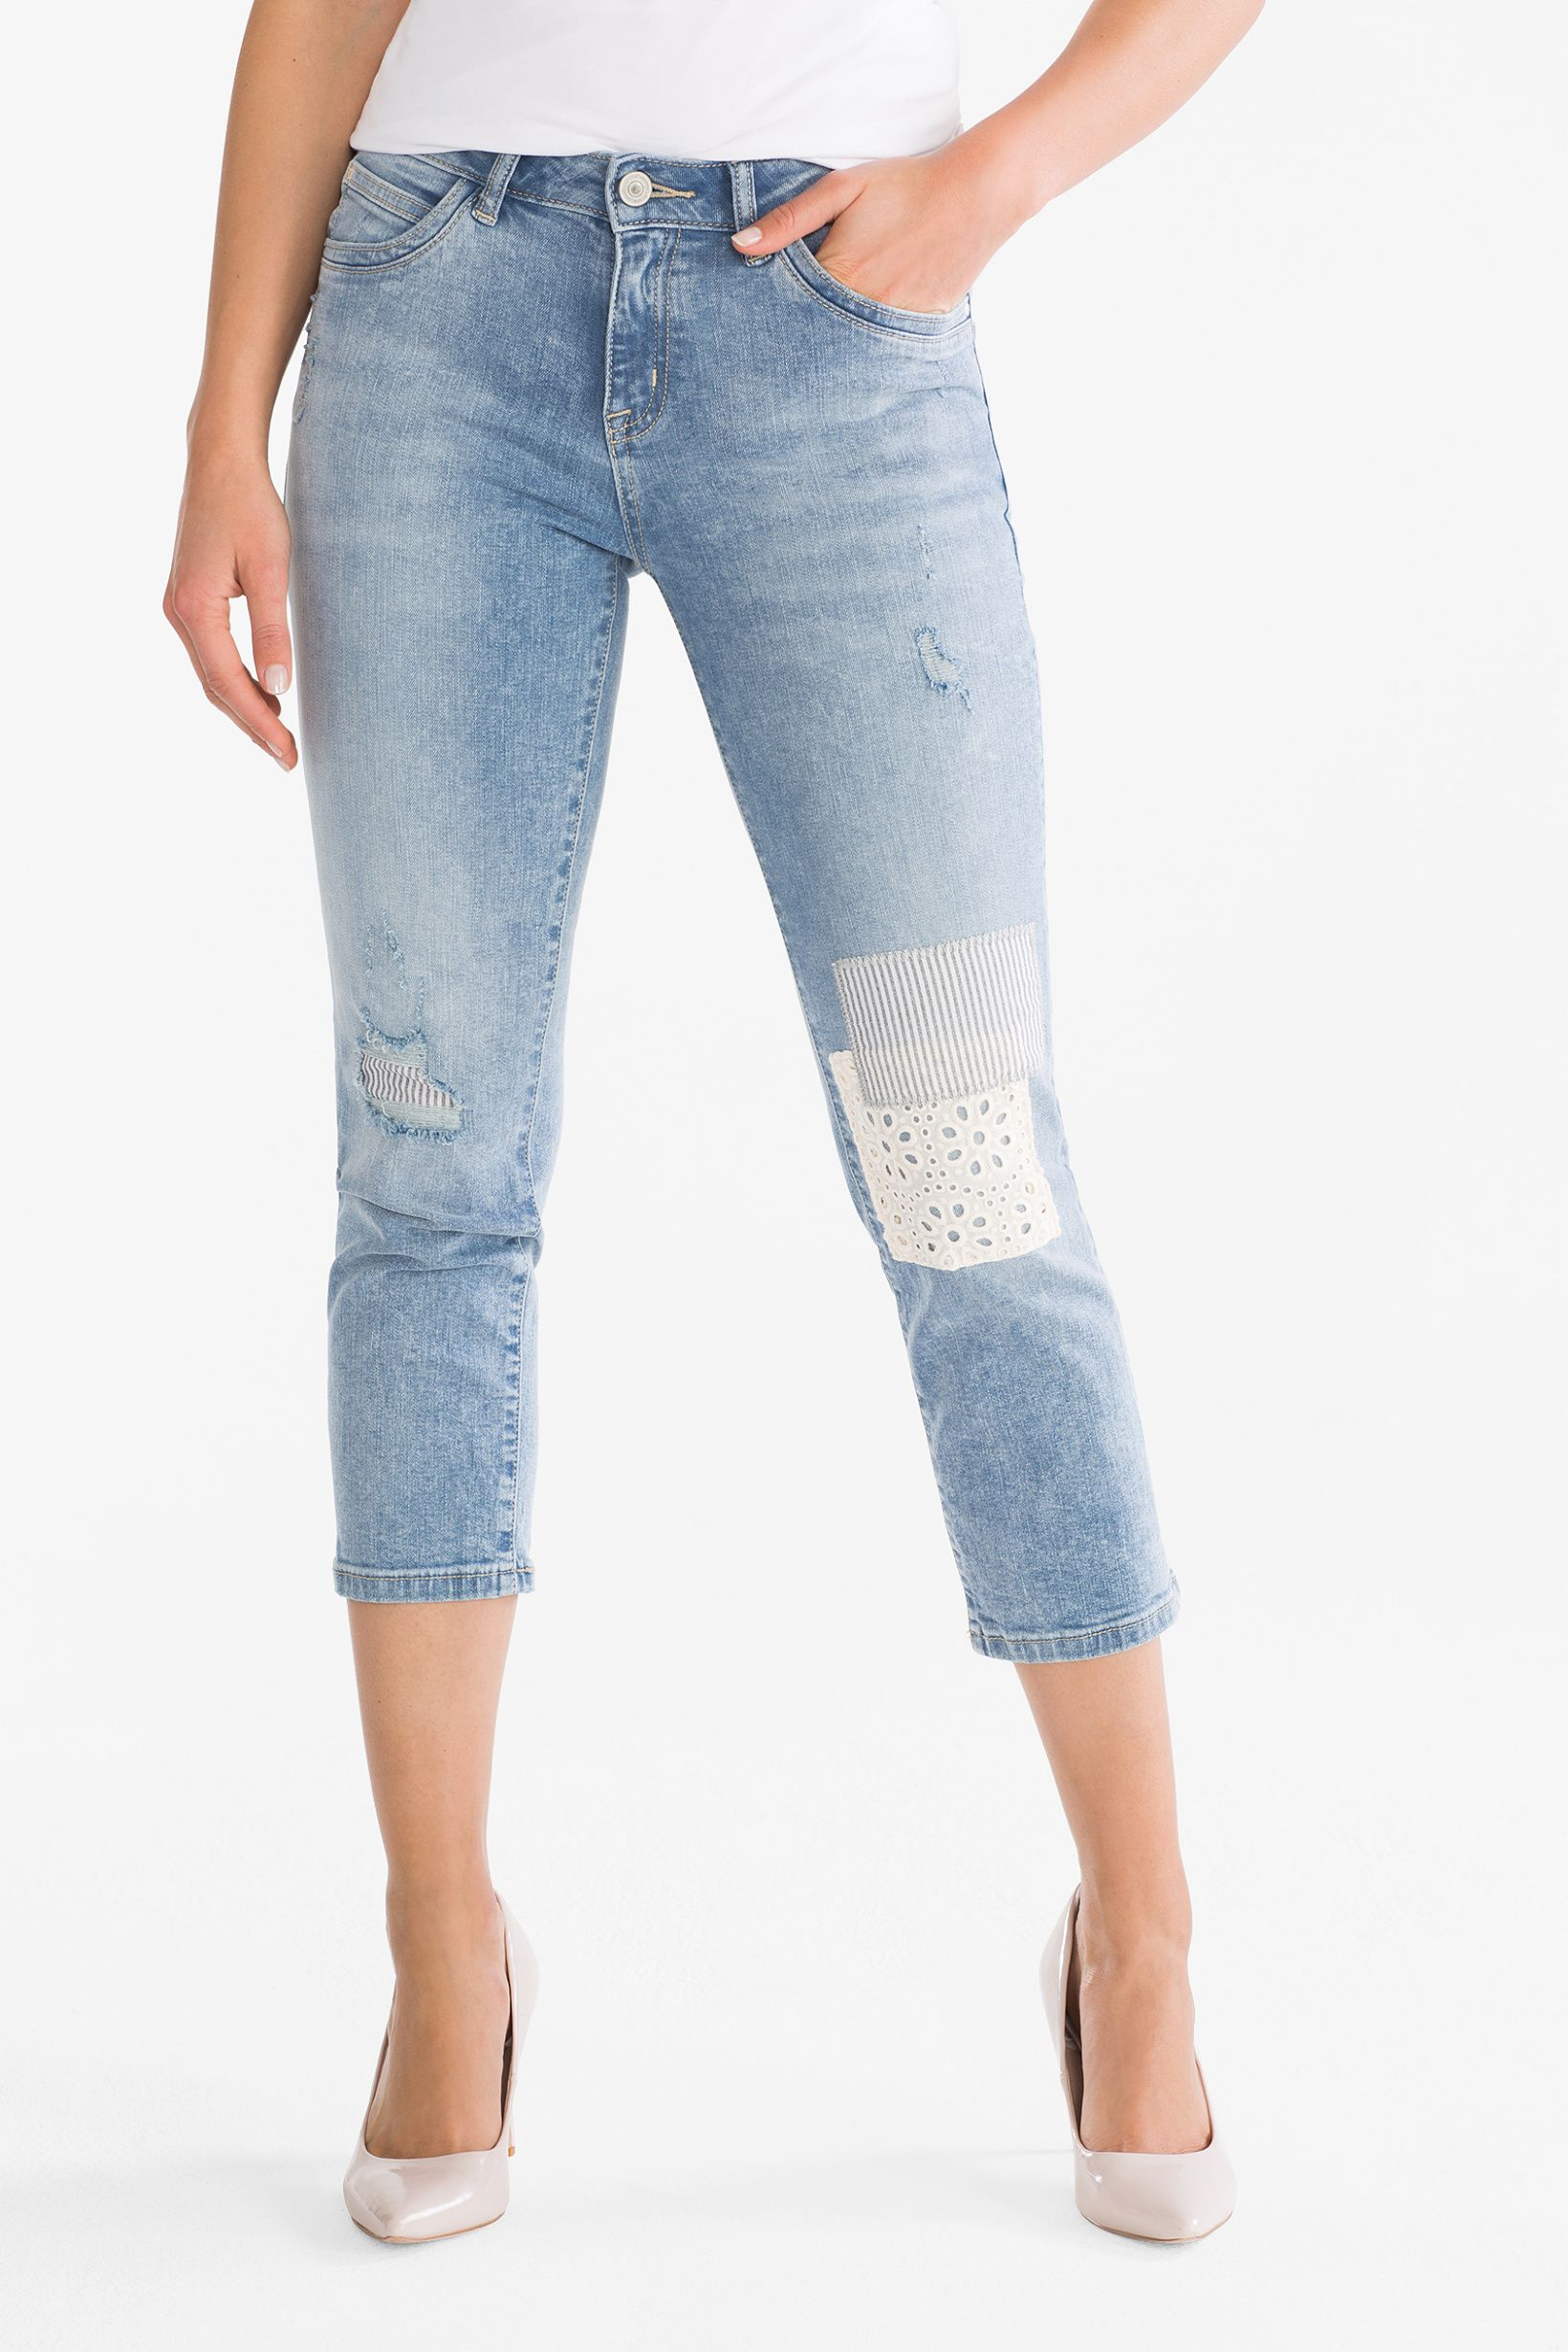 on sale 7ee14 b6b36 THE CROP JEANS - denim-light blue | Wishlist: clothes ...